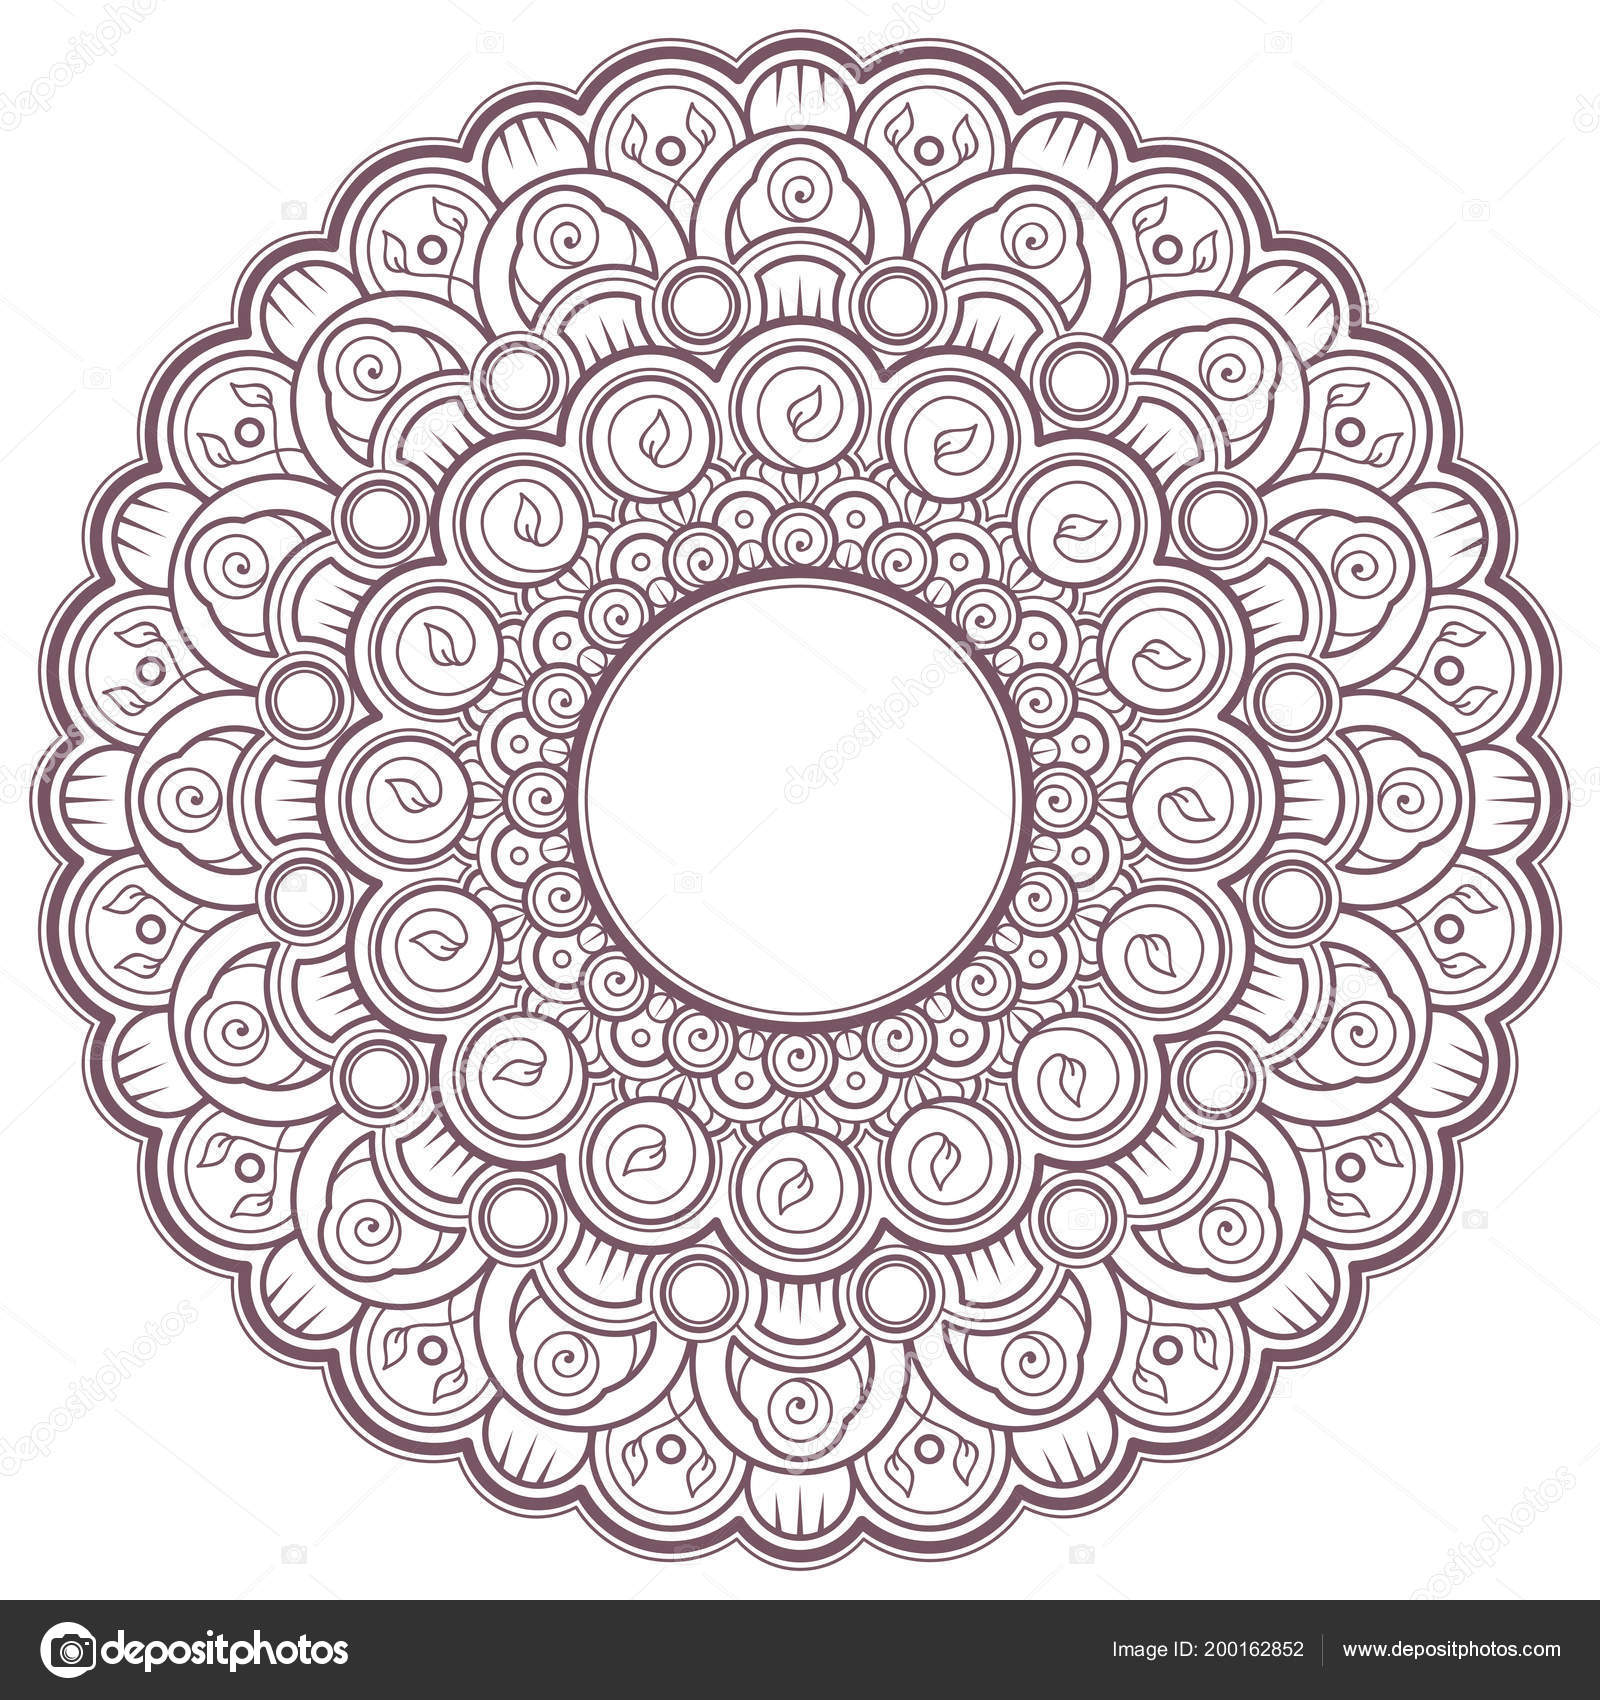 Line Art Circular Intricate Mandala Designed Coloring Pages Books